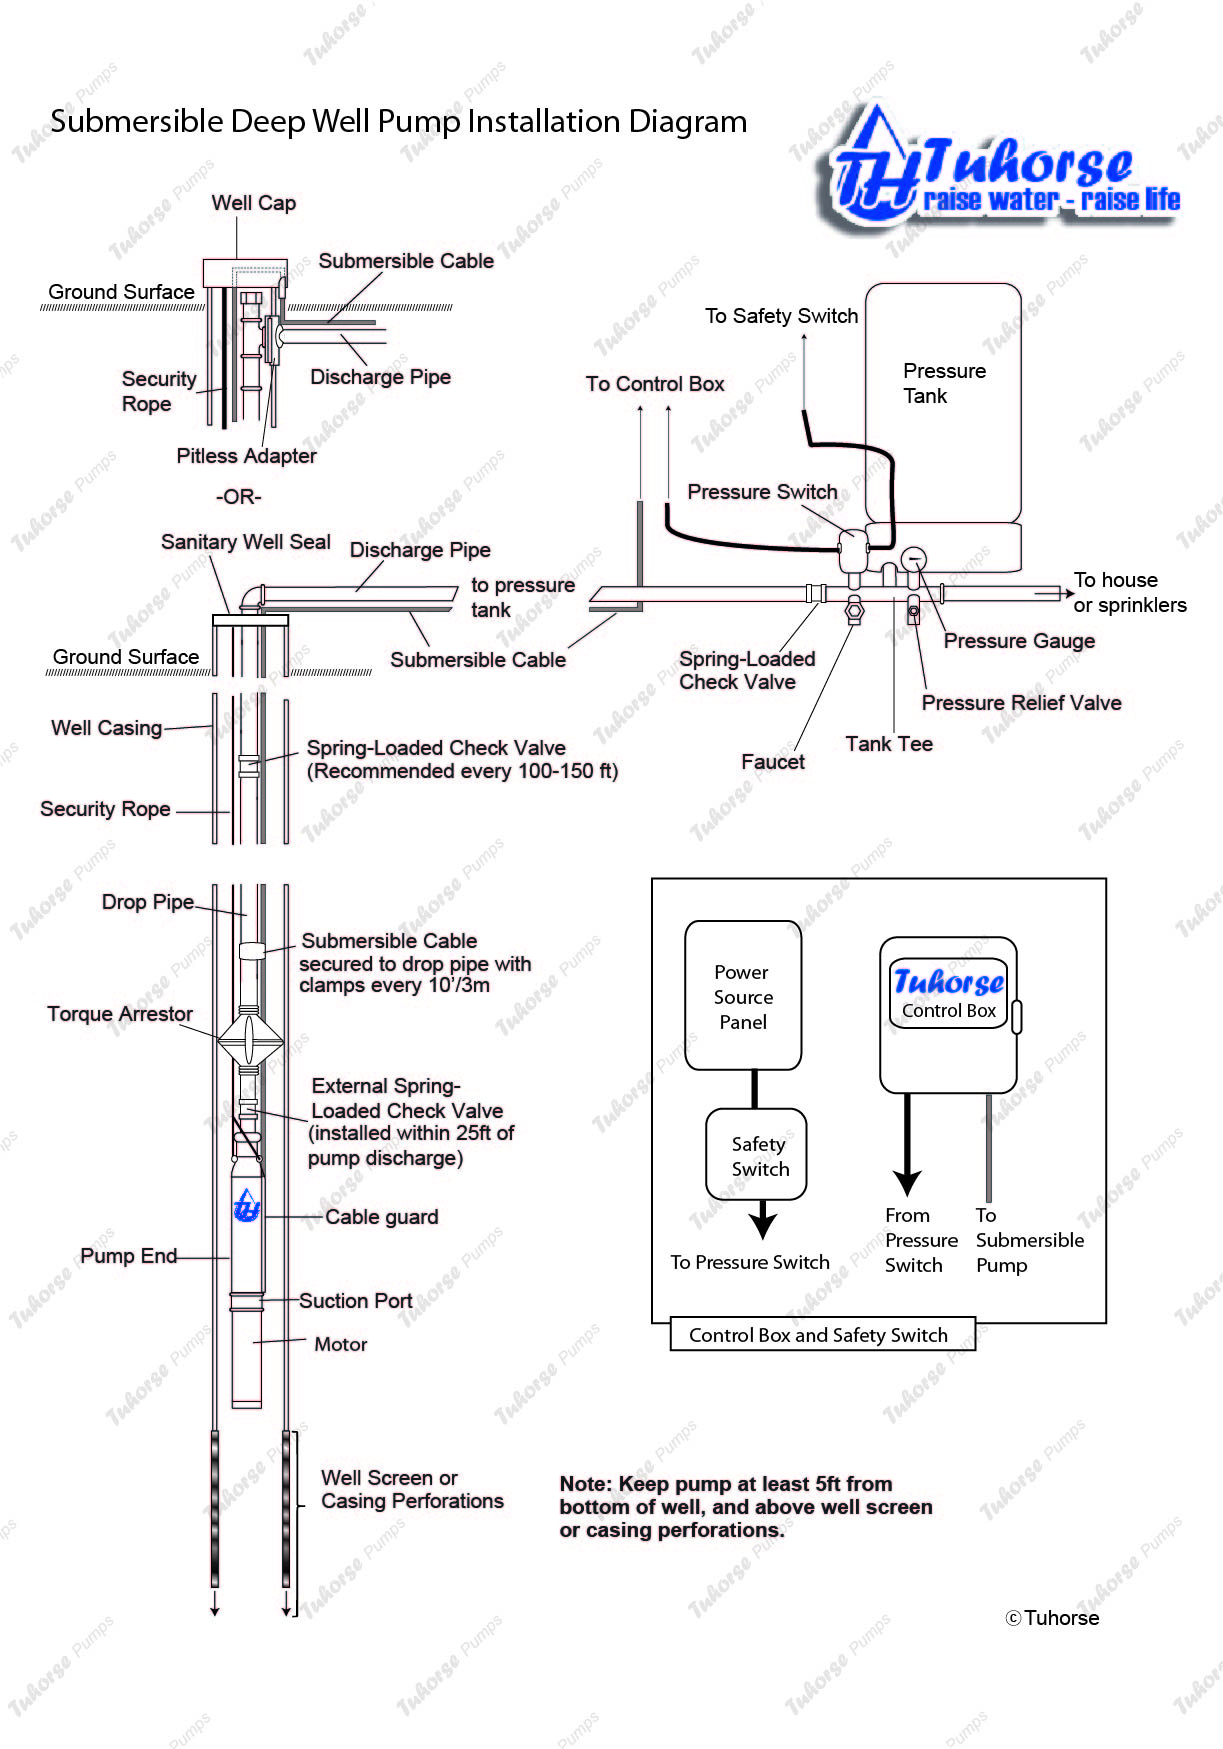 watermarkedinstallationdiagram4 pump installation franklin control box wiring diagram at soozxer.org